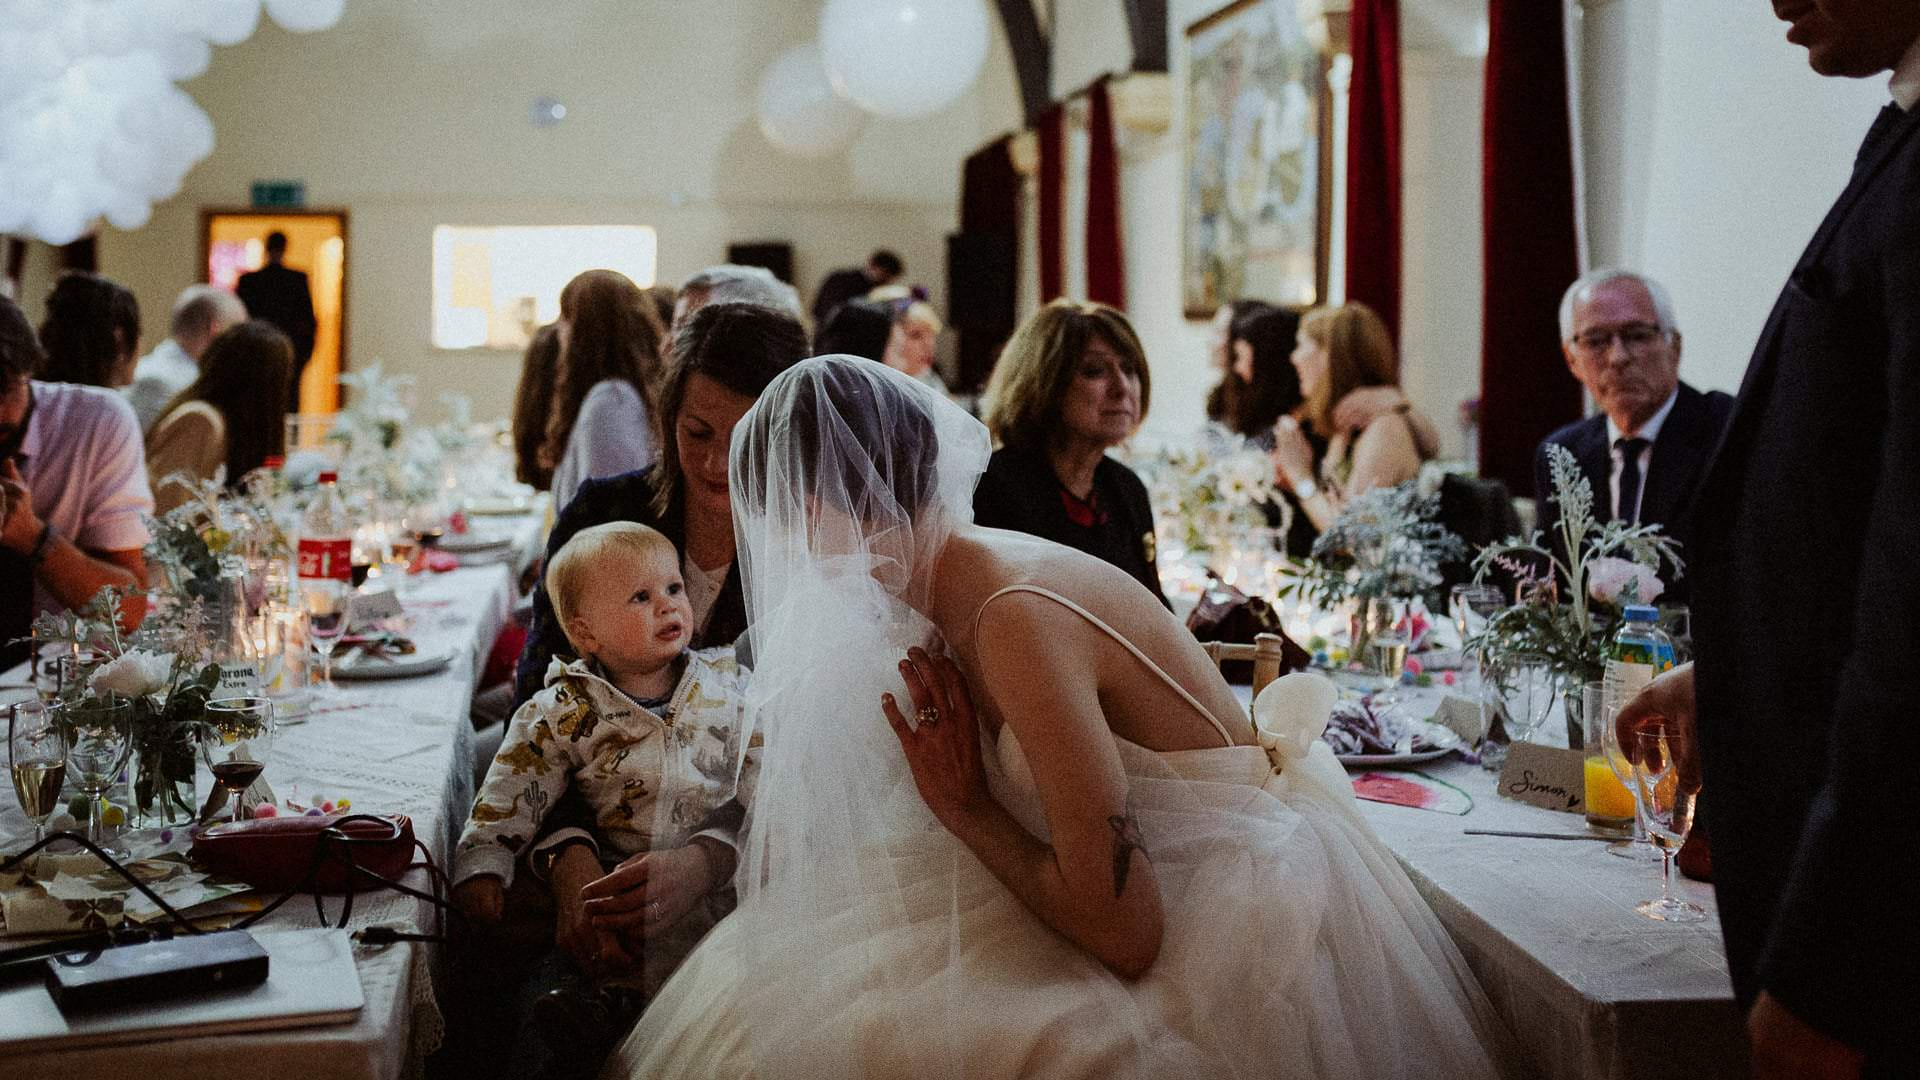 Manchester Wedding Photographer Feminist Wedding Wentworth Castle Gardens 0032